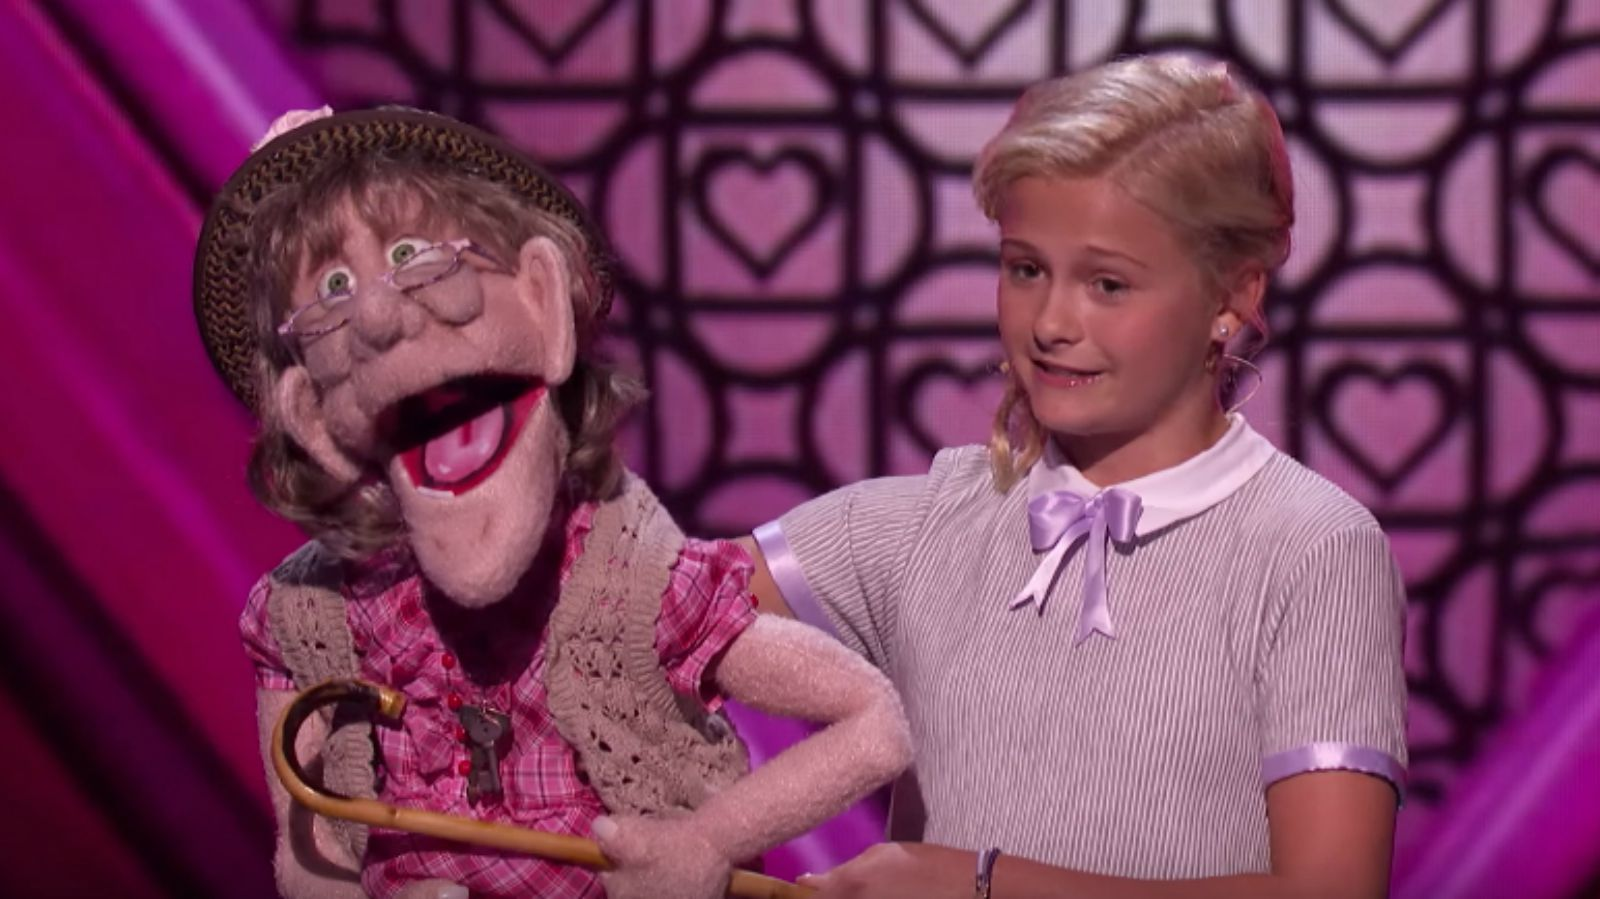 Watch young ventroliquist Darci Lynne Perform Aretha Franklin's '(You Make Me Feel Like) A Natural Woman' dedicated to Simon Cowell!